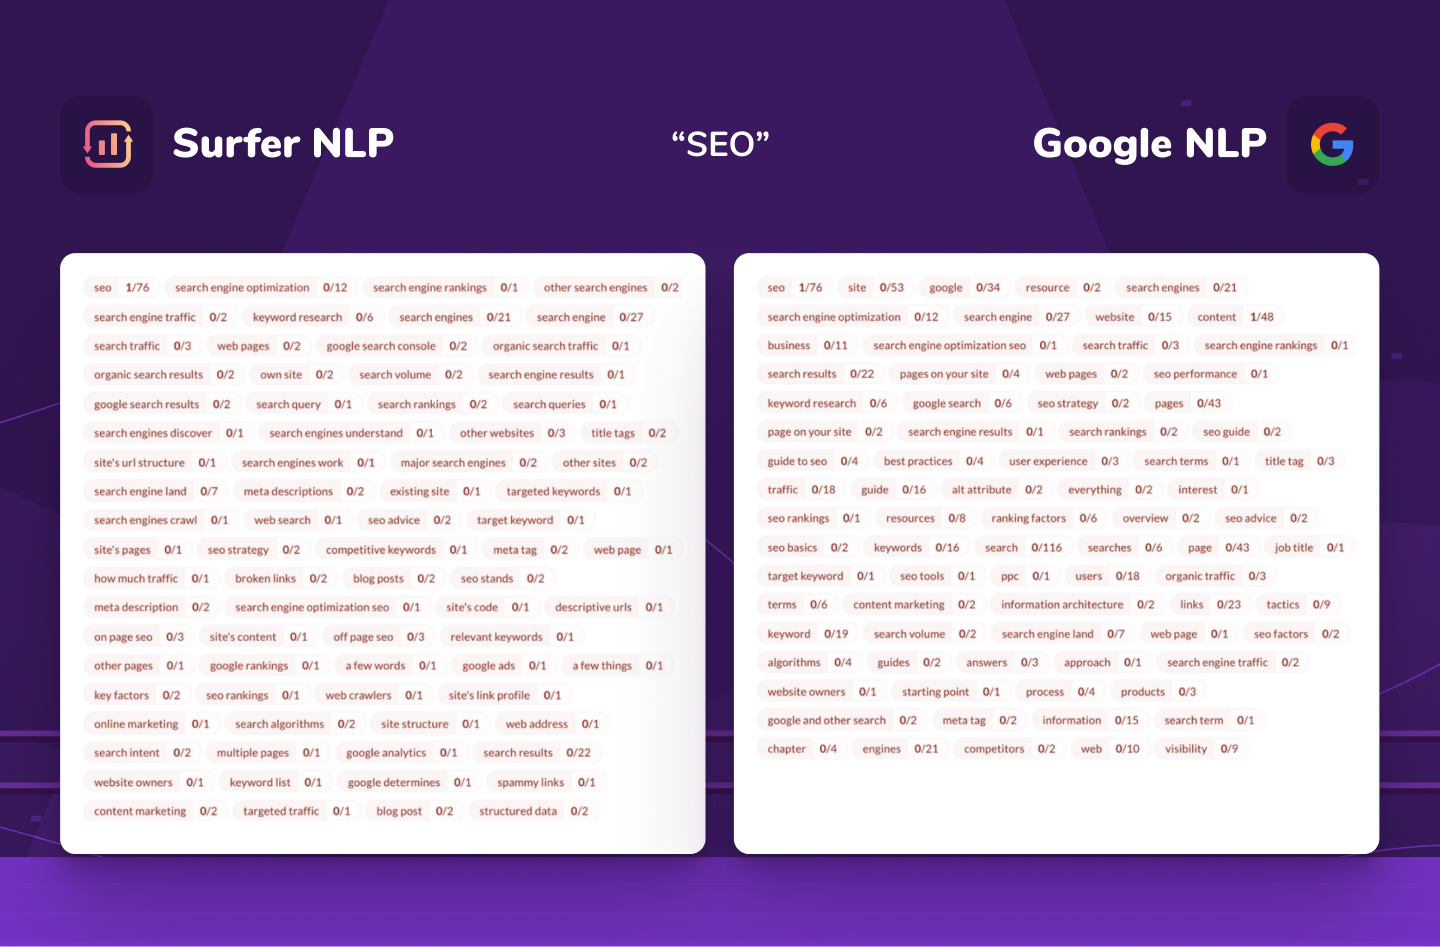 """comparison of Surfer NLP and Google NLP for """"SEO"""" keyword"""